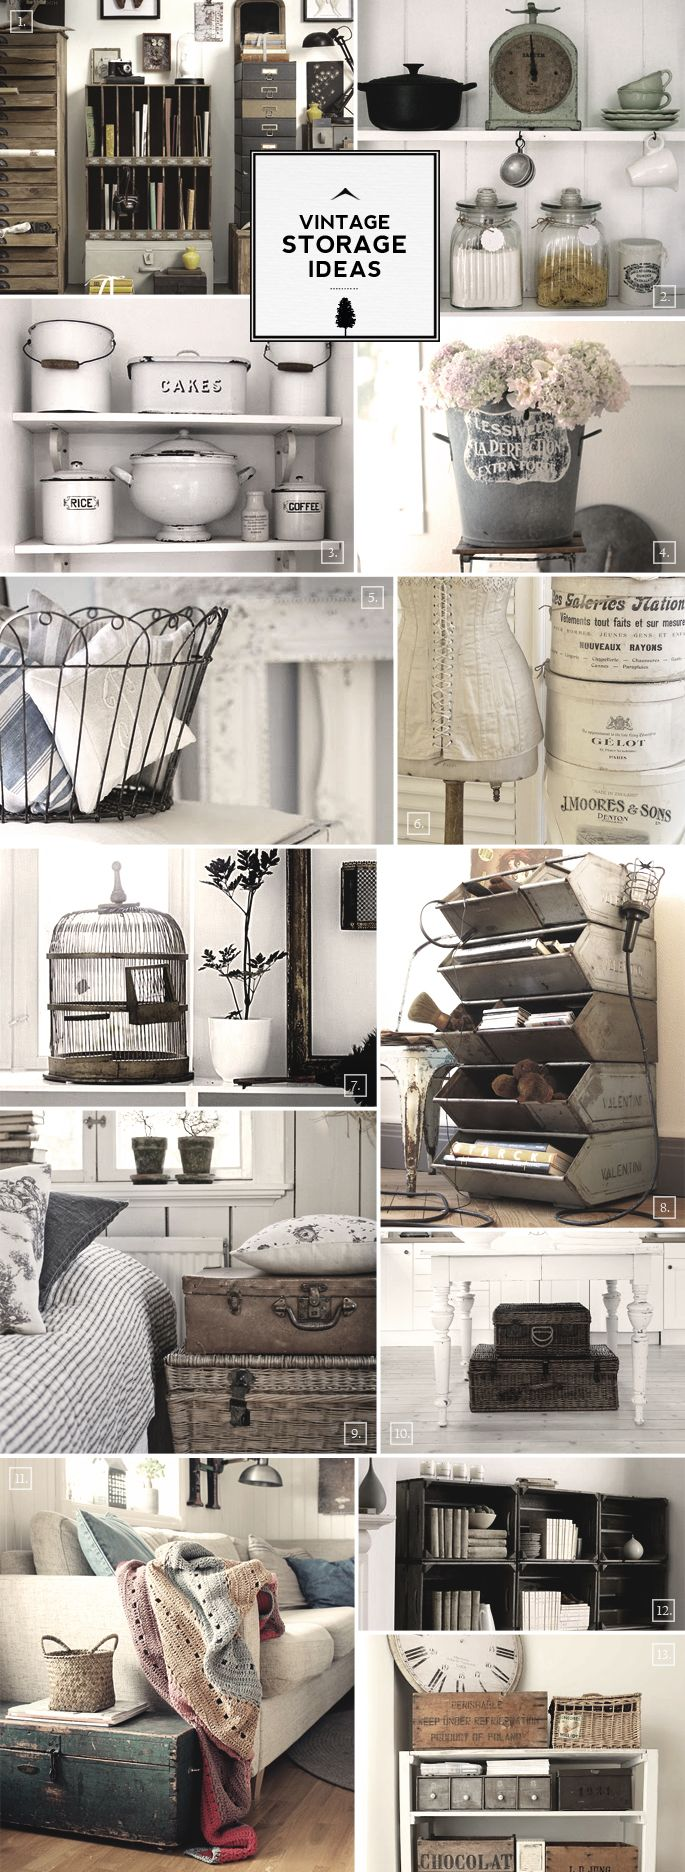 best 25+ rustic vintage decor ideas on pinterest | rustic kitchen